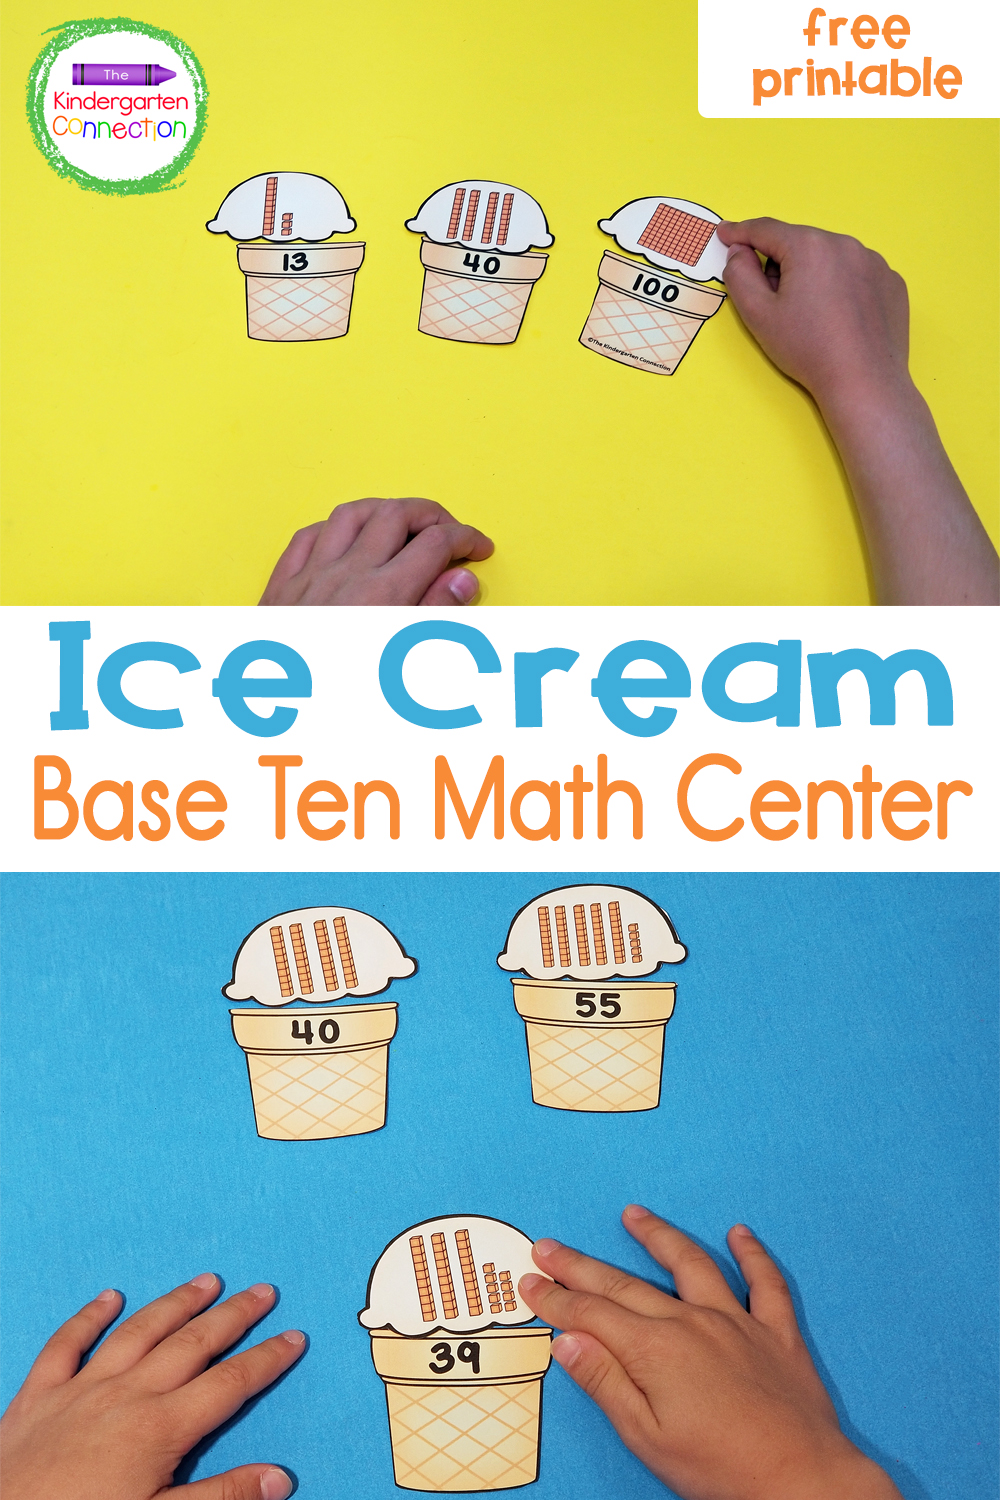 Count up the base 10 blocks on the ice cream scoops and match them to their cones with these fun and free Ice Cream Base 10 Puzzles!